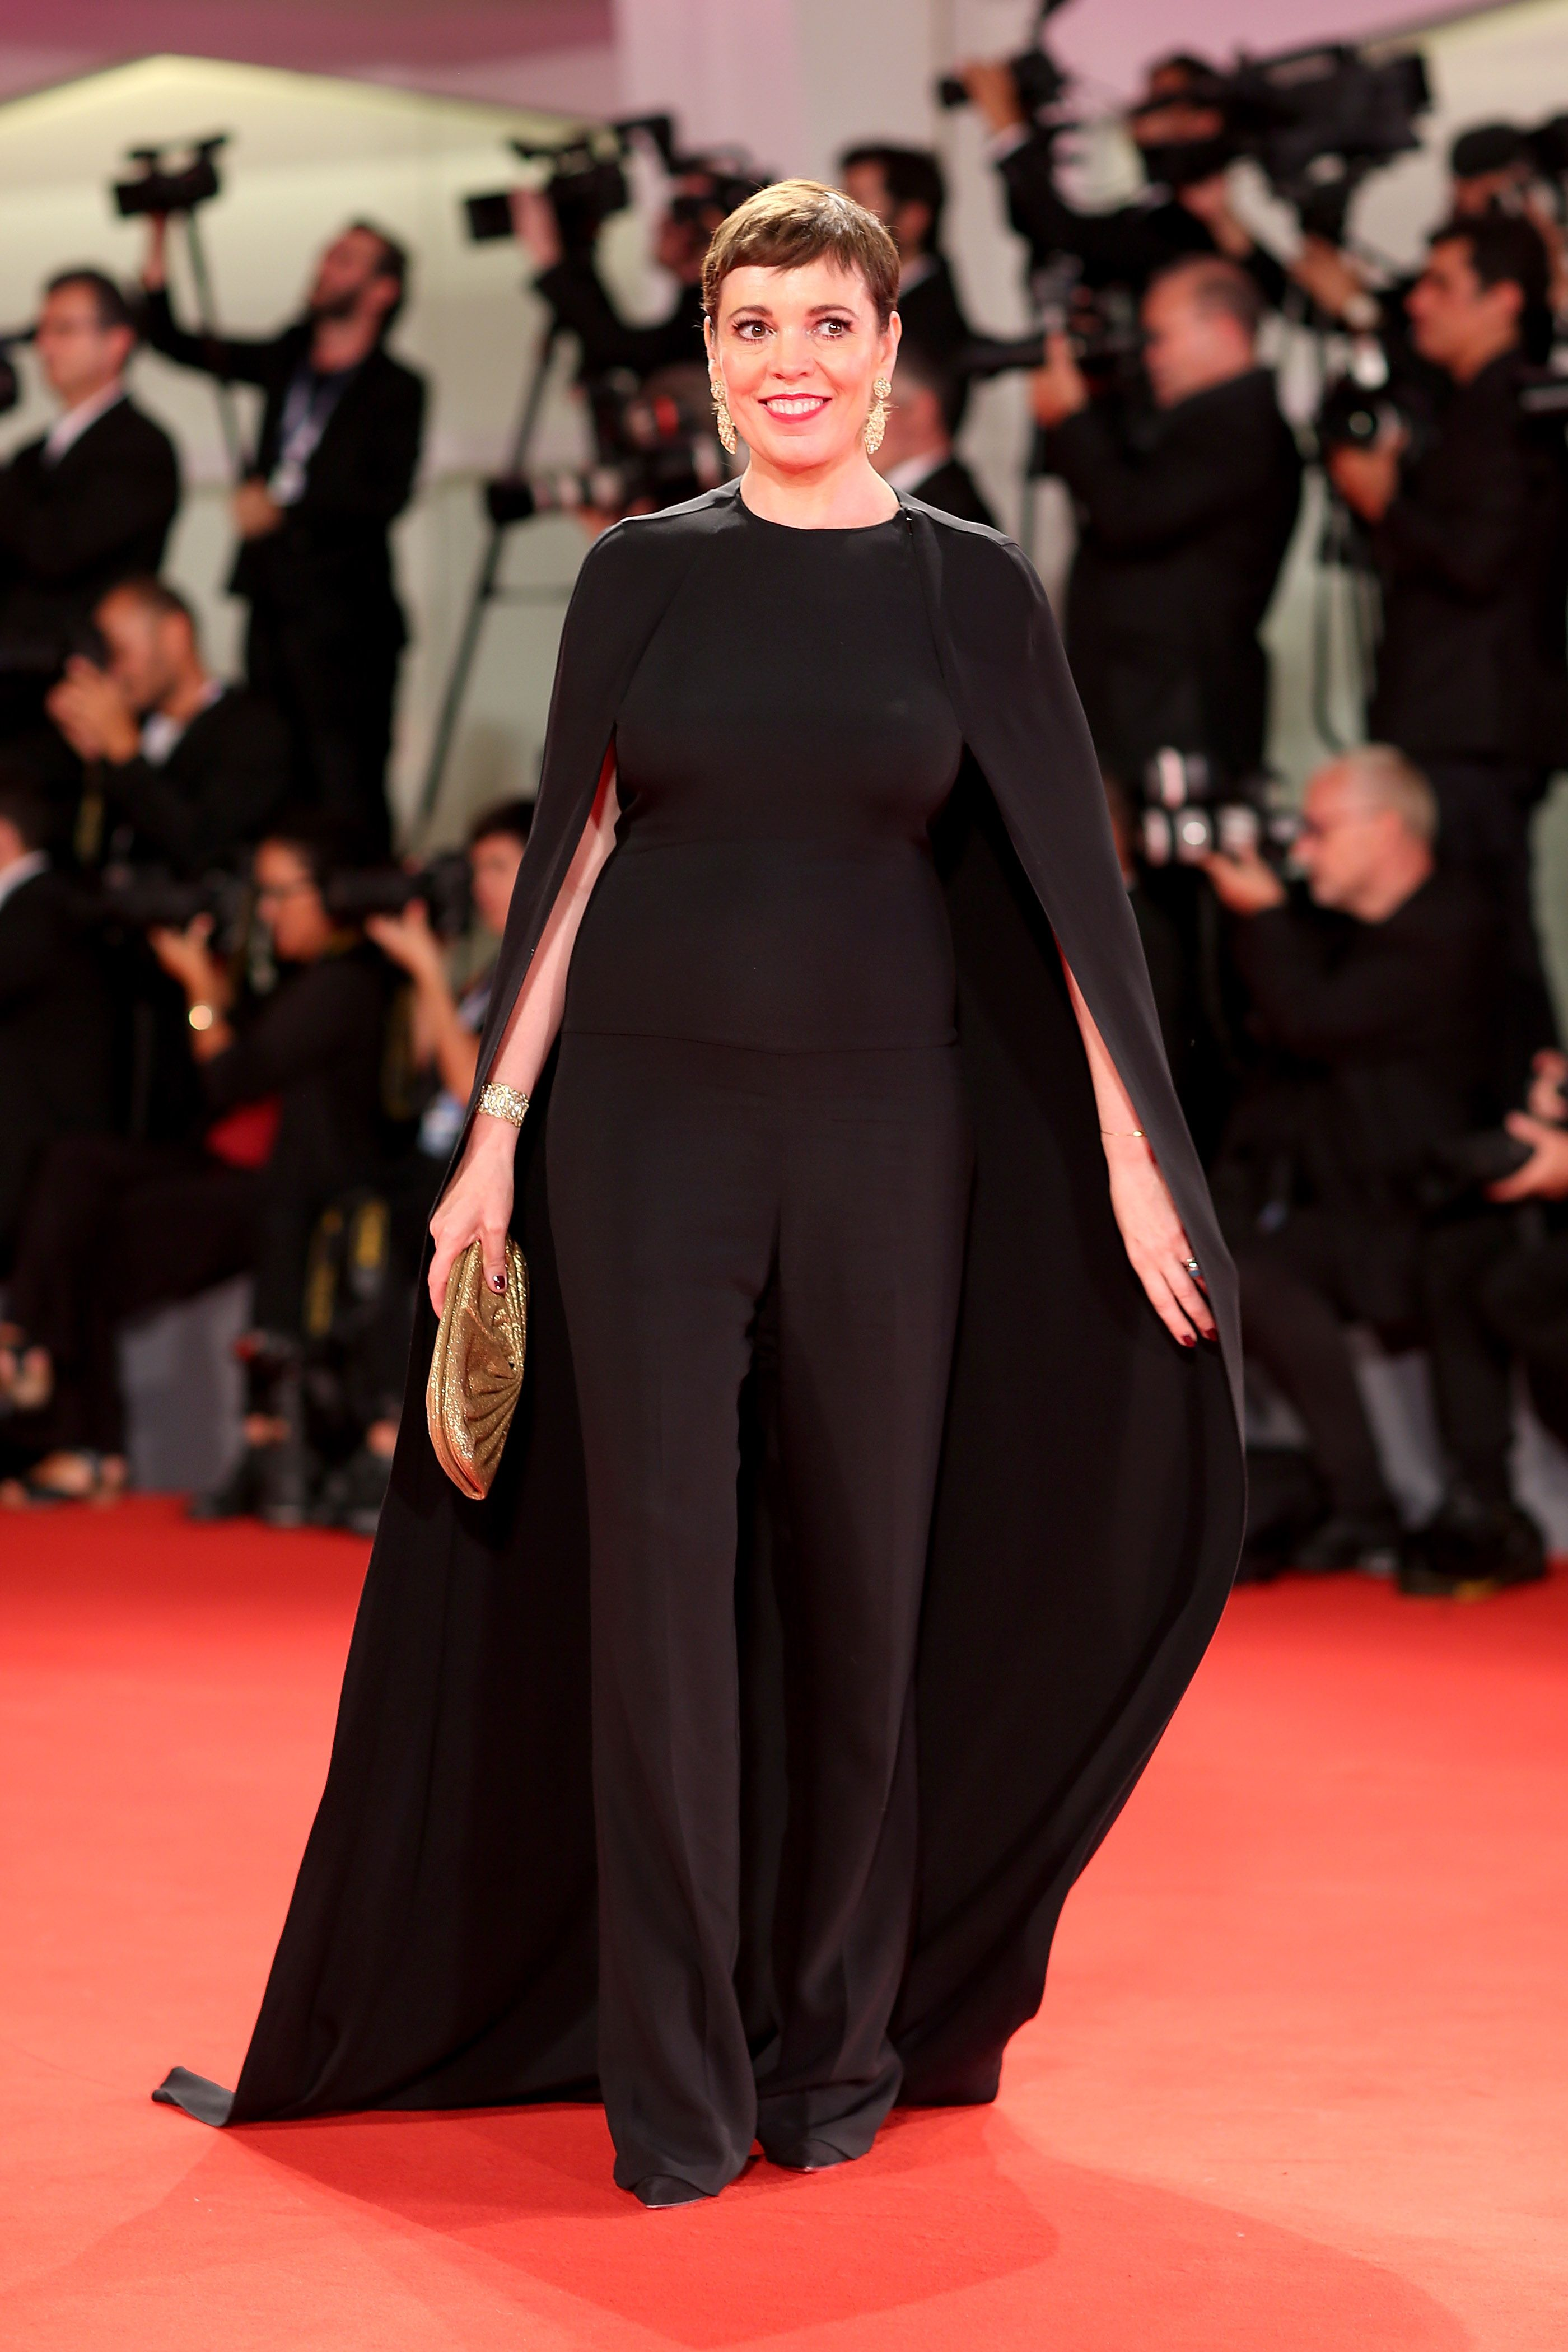 The actress wore a black jumpsuit with an elongated cape, statement diamond earrings, and a gold clutch for another day of the Venice Film Festival.